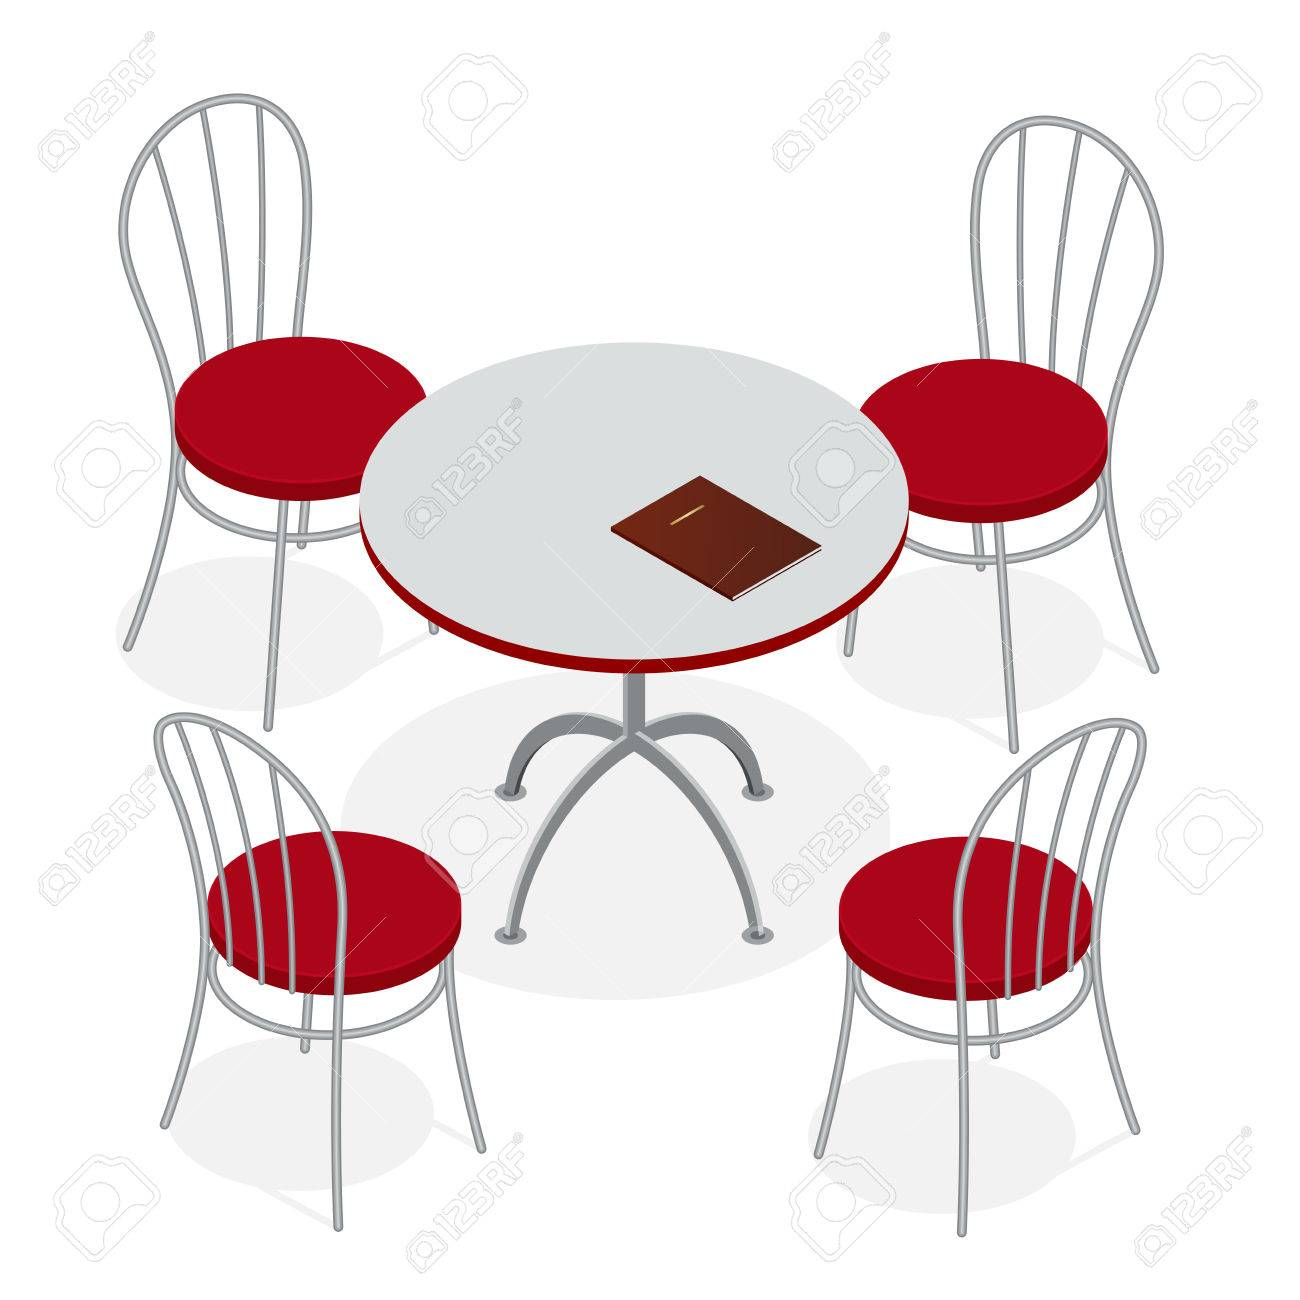 Table With Chairs For Cafes Modern Table And Chairs On White Royalty Free Cliparts Vectors And Stock Illustration Image 54106669